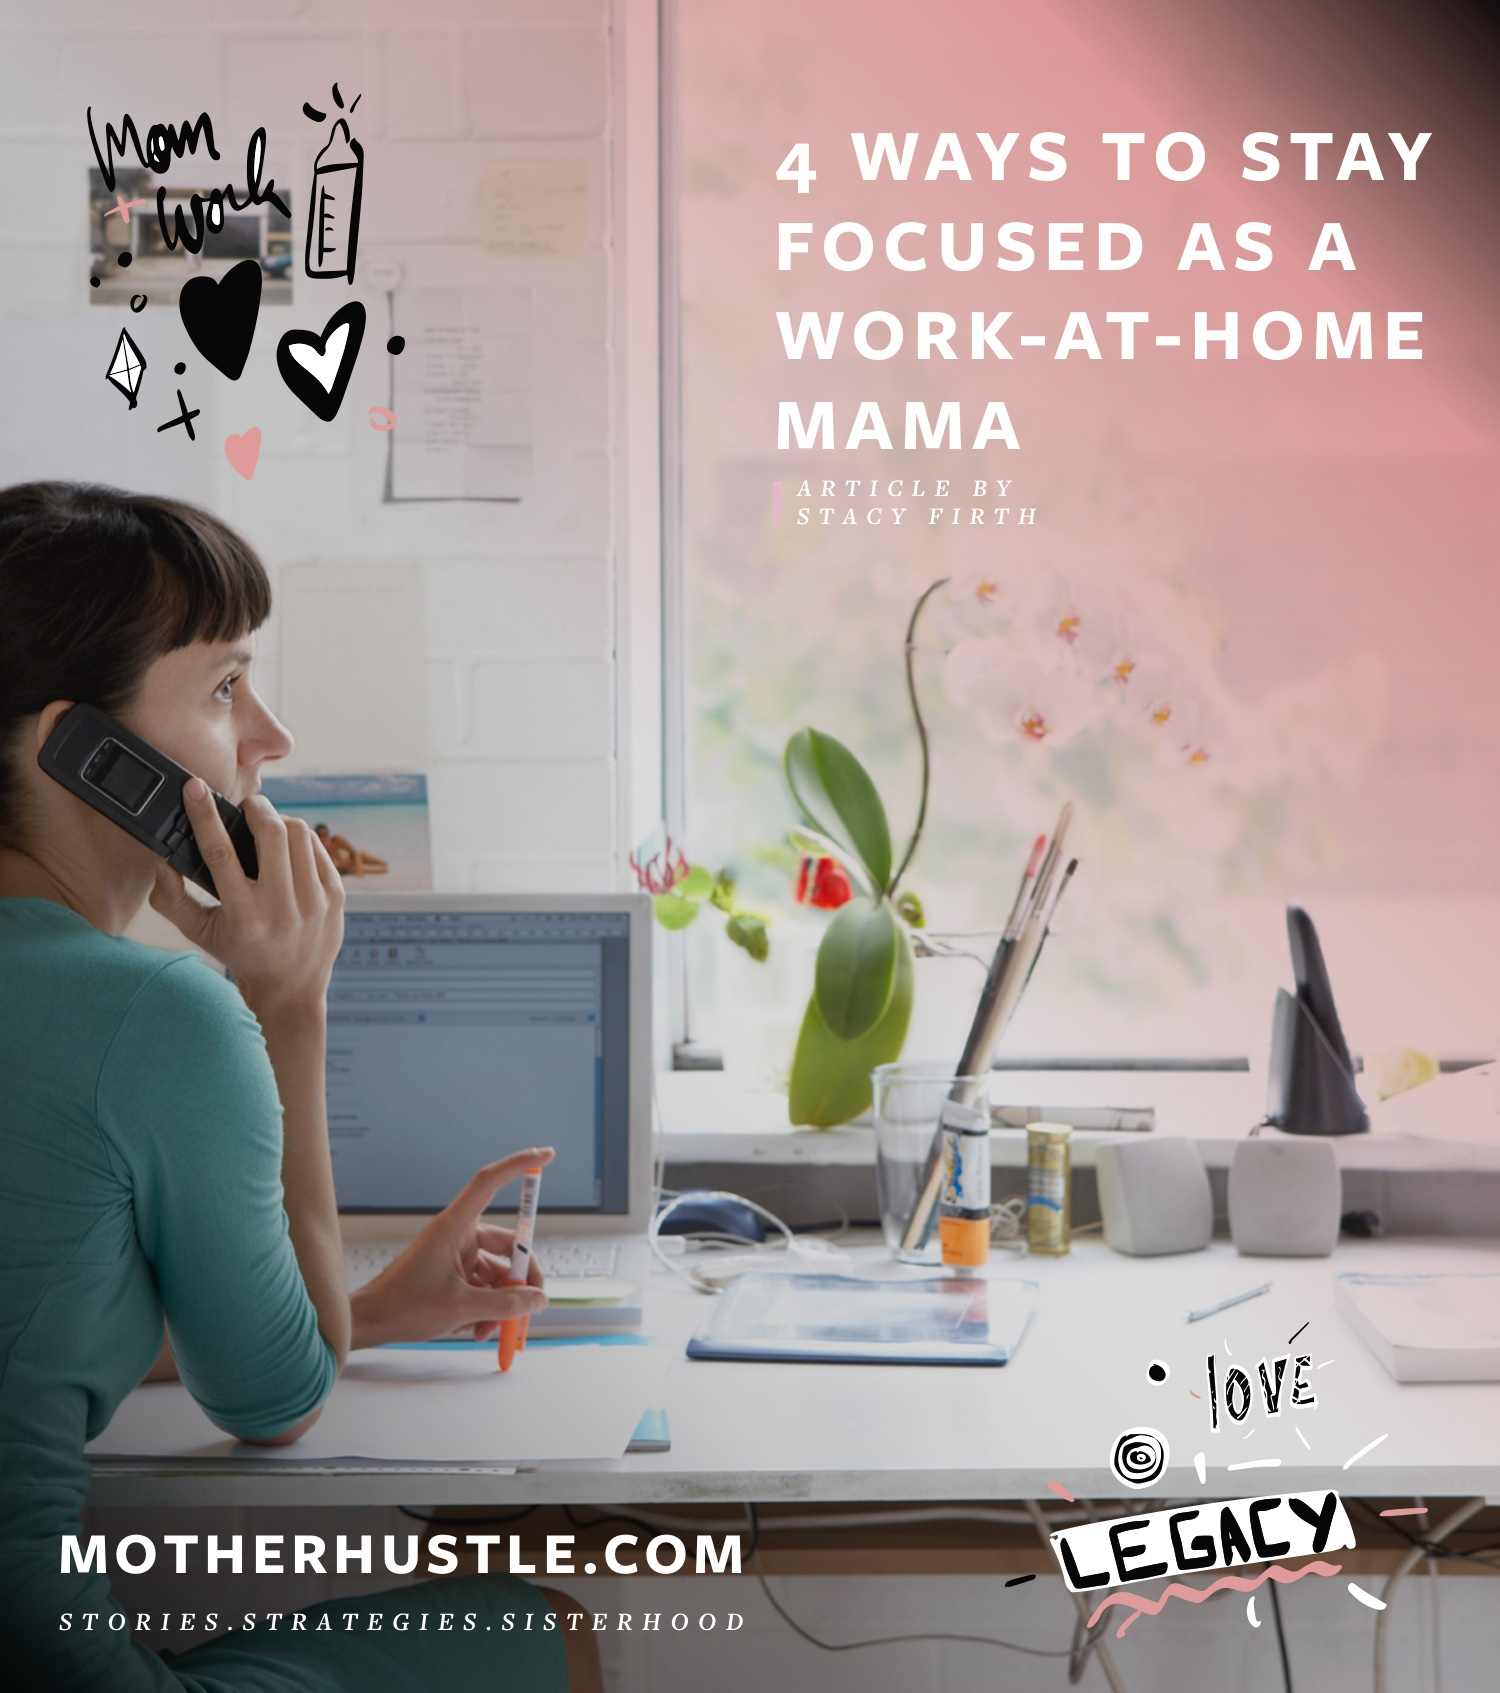 4 Ways To Stay Focused As A Work-At-Home Mama - by Stacy Firth for MotherHustle